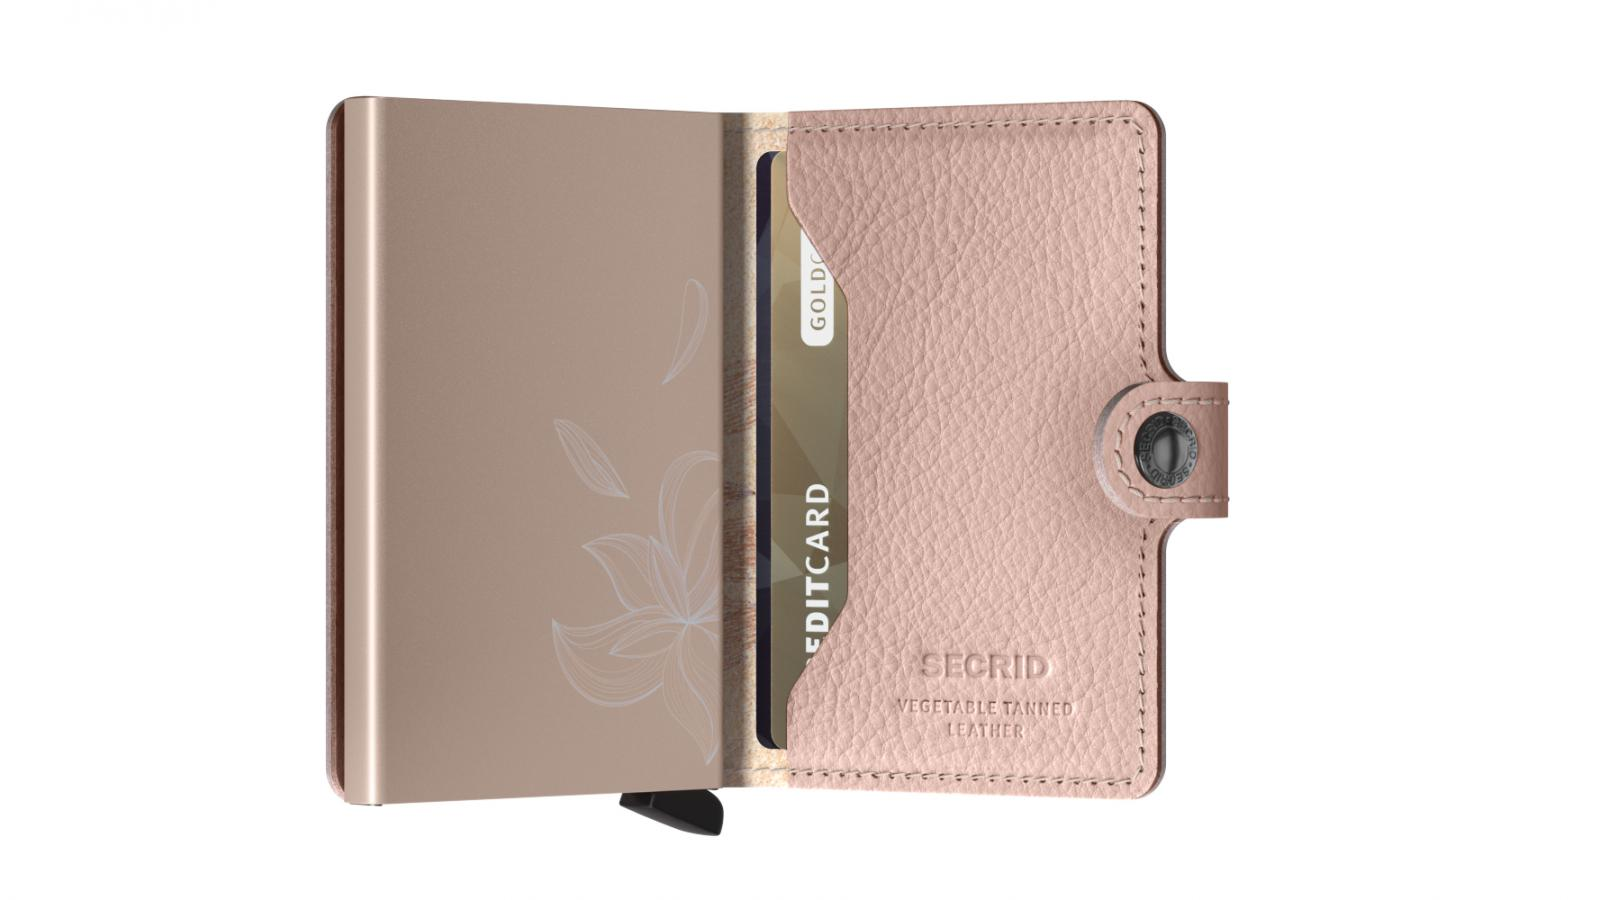 Secrid Miniwallet Stich Magnolia Rose Wallet